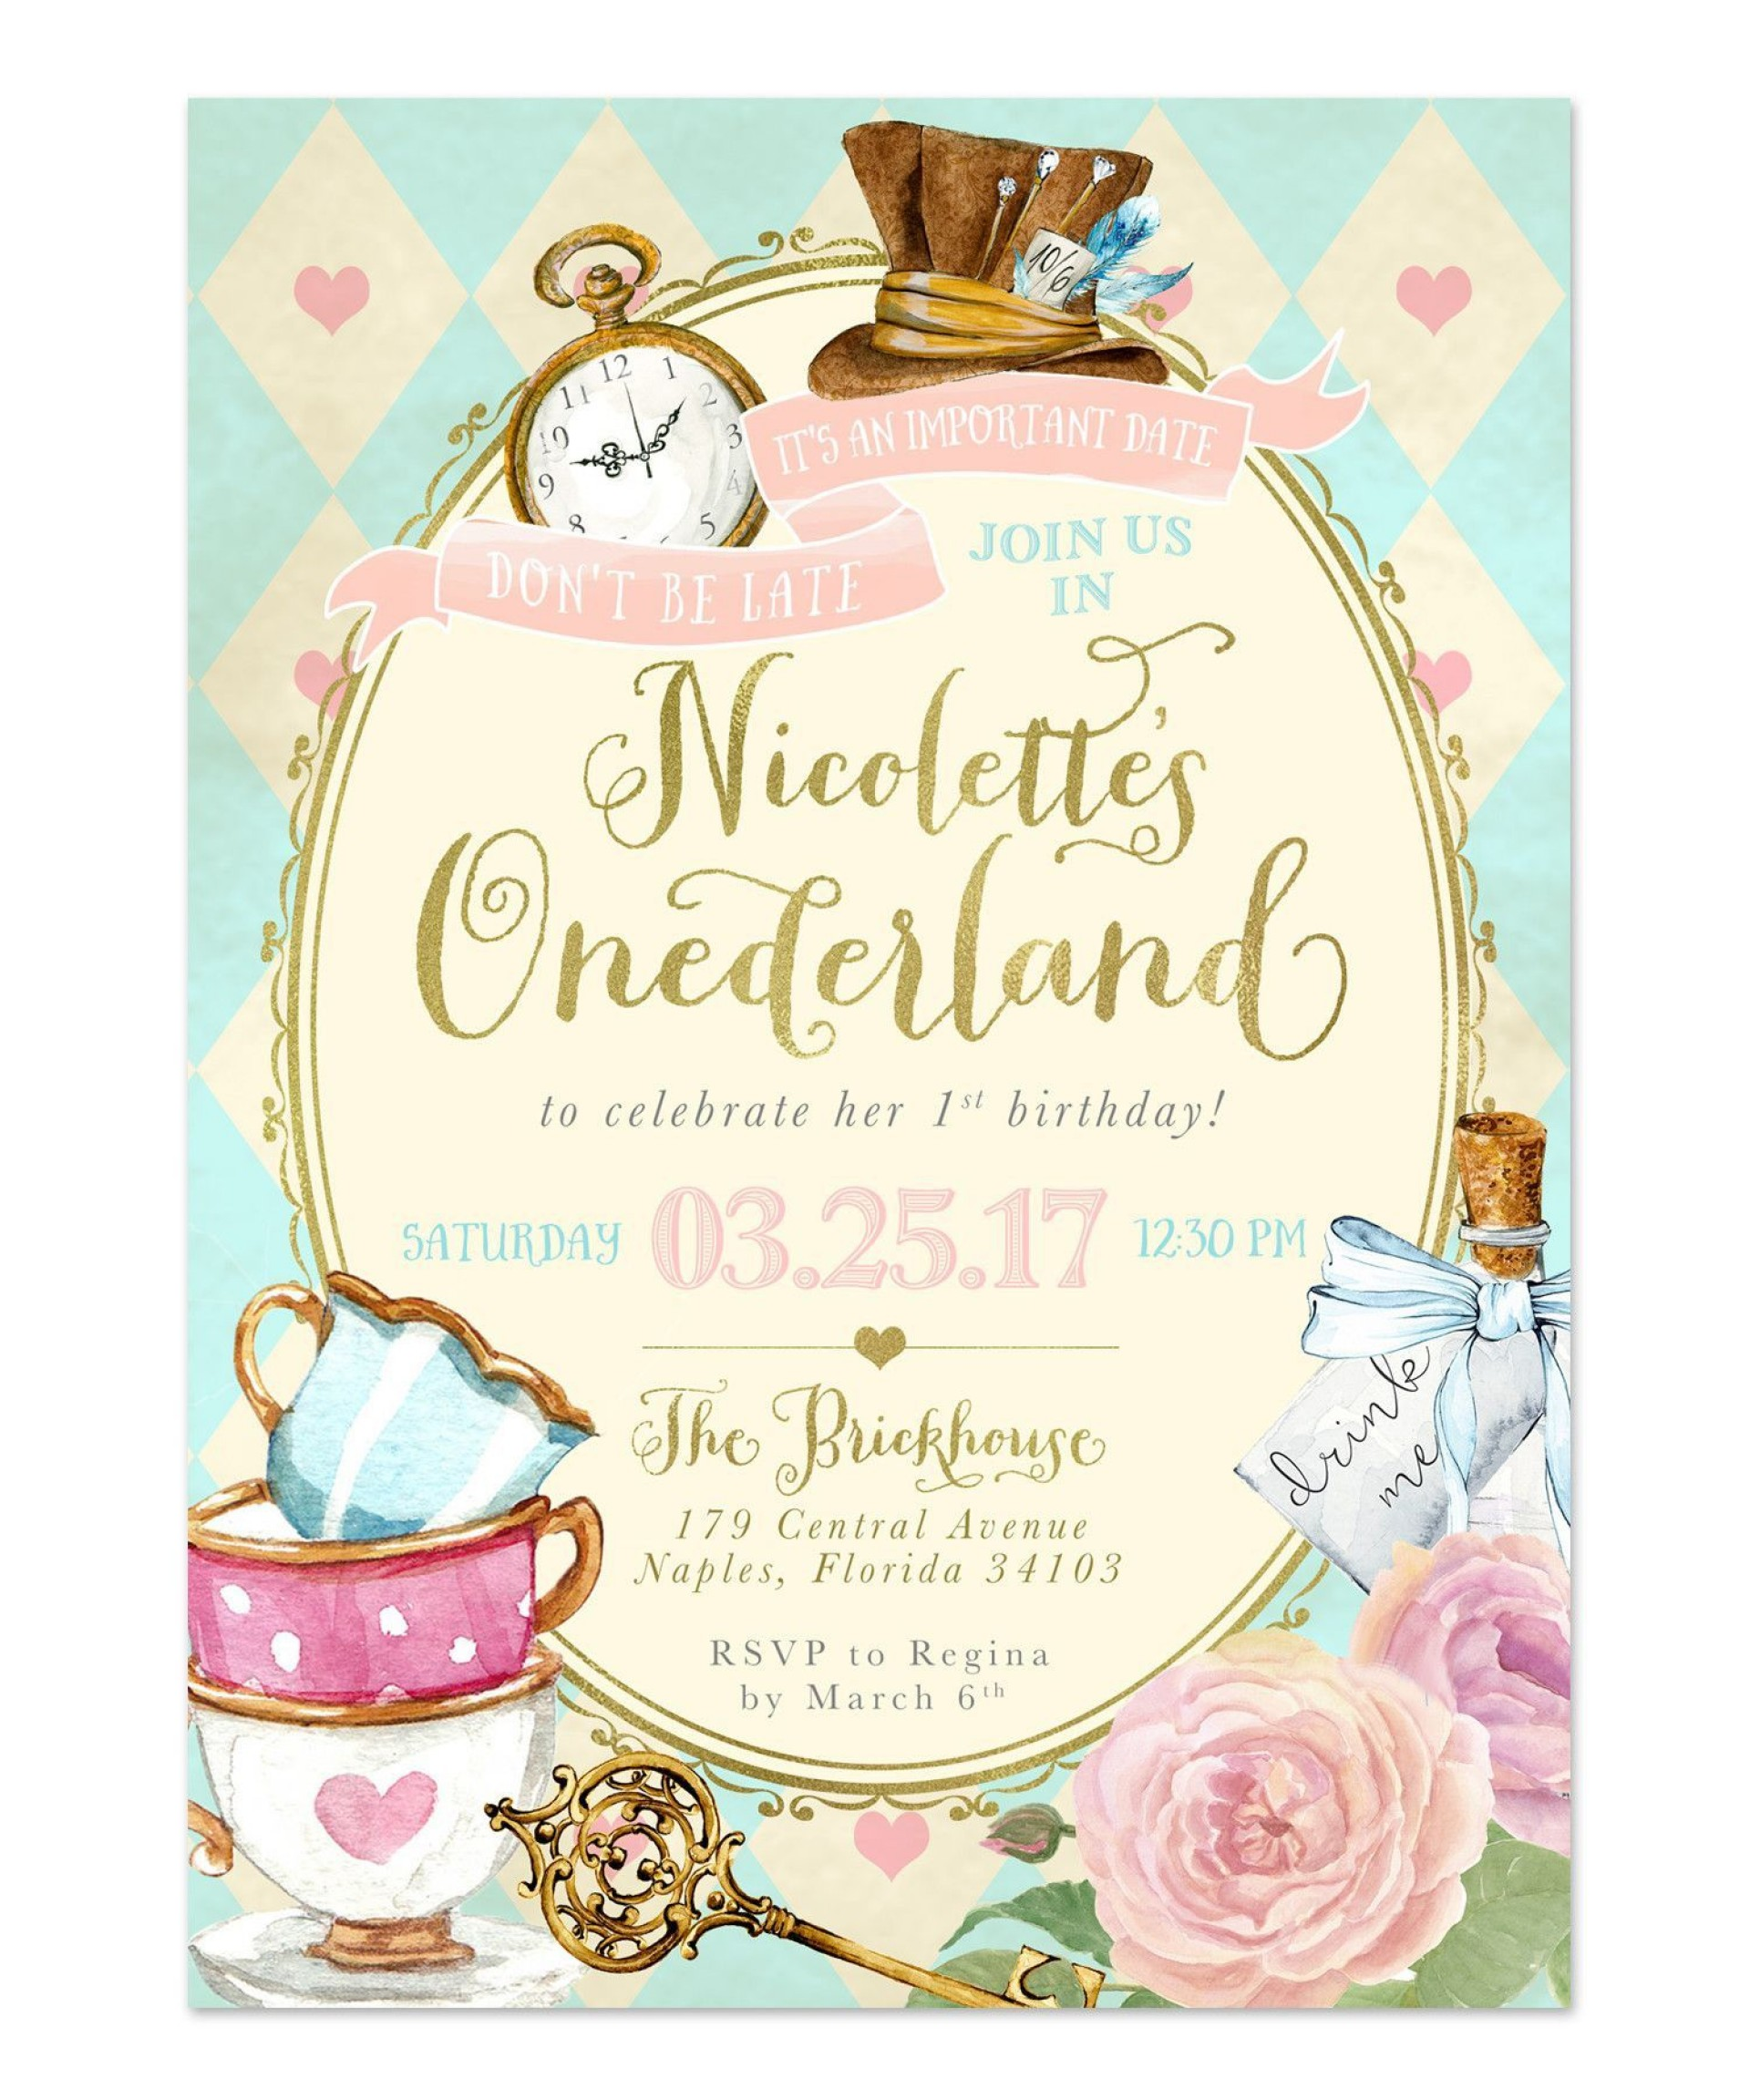 009 Awful Alice In Wonderland Birthday Party Invitation Printable Free Image 1920